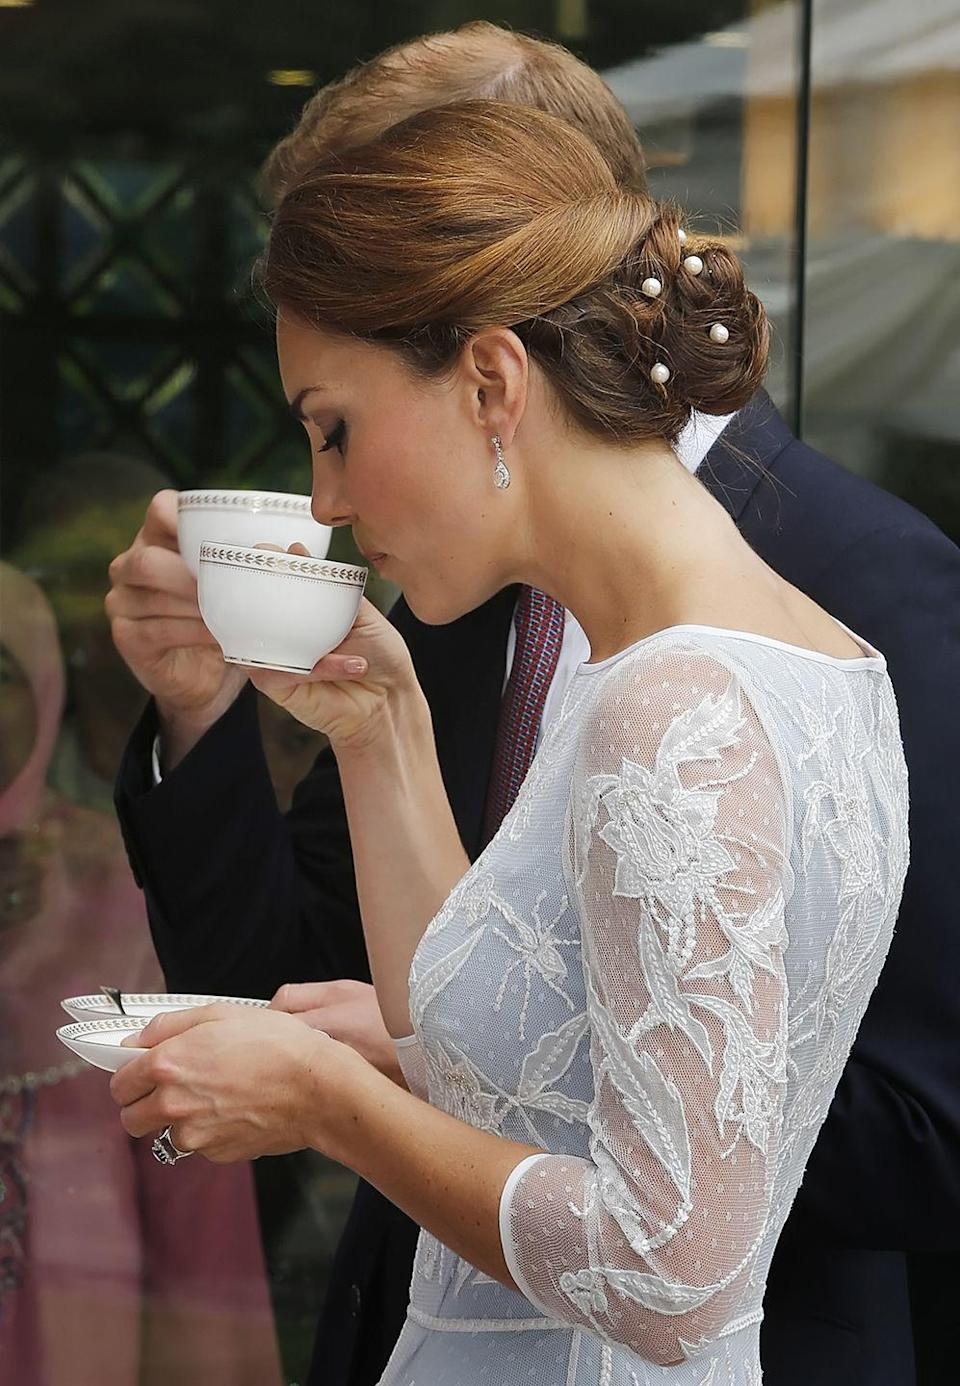 <p>The Duke and Duchess of Cambridge each take a sip of tea at the British High Commission in Kuala Lumpur, Malaysia. The royal couple were on a Diamond Jubilee Tour, stopping in Singapore, the Solomon Islands, and Tuvalu in addition to Malaysia.<br></p>